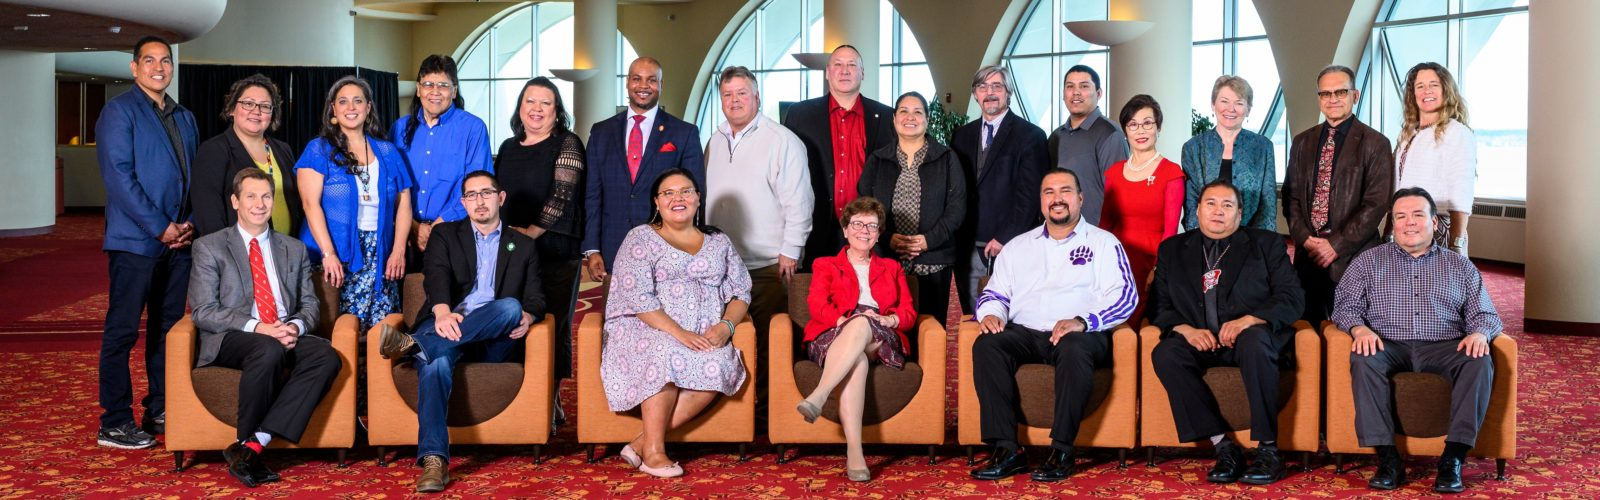 Wisconsin tribal leaders and officials from the University of Wisconsin-Madison are pictured in a group photo during a Native Nations Summit held at the Monona Terrace Community and Convention Center in Madison, Wis., on May 10, 2019. (Photo by Jeff Miller / UW-Madison) Pictured standing from left to right are Aaron Bird Bear, UW-Madison Assistant Dean for Student Diversity Programs in the School of Education; LeAnn White, Vocational/Higher Education Transition Coordinator, Lac du Flambeau Band of Lake Superior Chippewa Indians; Jessica Ryan, Tribal Council Member, Brothertown Indian Nation; Don Rosin, Human Resources Manager, Red Cliff Band of Lake Superior Chippewa Indians; Jolene Bowman, Vice President, Stockbridge-Munsee Band of Mohican Indians; Patrick Sims, UW-Madison Deputy Vice Chancellor for Diversity and Inclusion, Vice Provost and Chief Diversity Officer; Thomas Boelter, Administrator of Education and Culture, Forest County Potawatomi; Mic Isham, Executive Administrator of the Great Lakes Indian Fish & Wildlife Commission and past chairman of the Lac Courte Oreilles Band of Lake Superior Chippewa; Yvette McGeshick, Education Director, Sokaogon Chippewa Community Mole Lake Band of Lake Superior Chippewa; Paul Robbins, UW-Madison Dean of the Nelson Institute for Environmental Studies; Gunnar Peters, Legislator, Menominee Indian Tribe of Wisconsin; Soyeon Shim, UW-Madison Dean of the School of Human Ecology; Sarah Mangelsdorf, UW-Madison Provost; Larry Nesper, UW-Madison Director of American Indian Studies and Professor of Anthropology; and Jessie Conaway, Co-Chair Native Nations_UW Working Group and UW-Madison Faculty Associate, Nelson Institute for Environmental Studies. Pictured seated from left to right are Charles Hoslet, UW-Madison Vice Chancellor of University Relations; Dylan Jennings, Tribal Council Member, Bad River Band of Lake Superior Chippewa; Nehoma Thundercloud, Tribal Advisory Council Member, Ho-Chunk Nation; Rebecca Blank, UW-Madison Ch